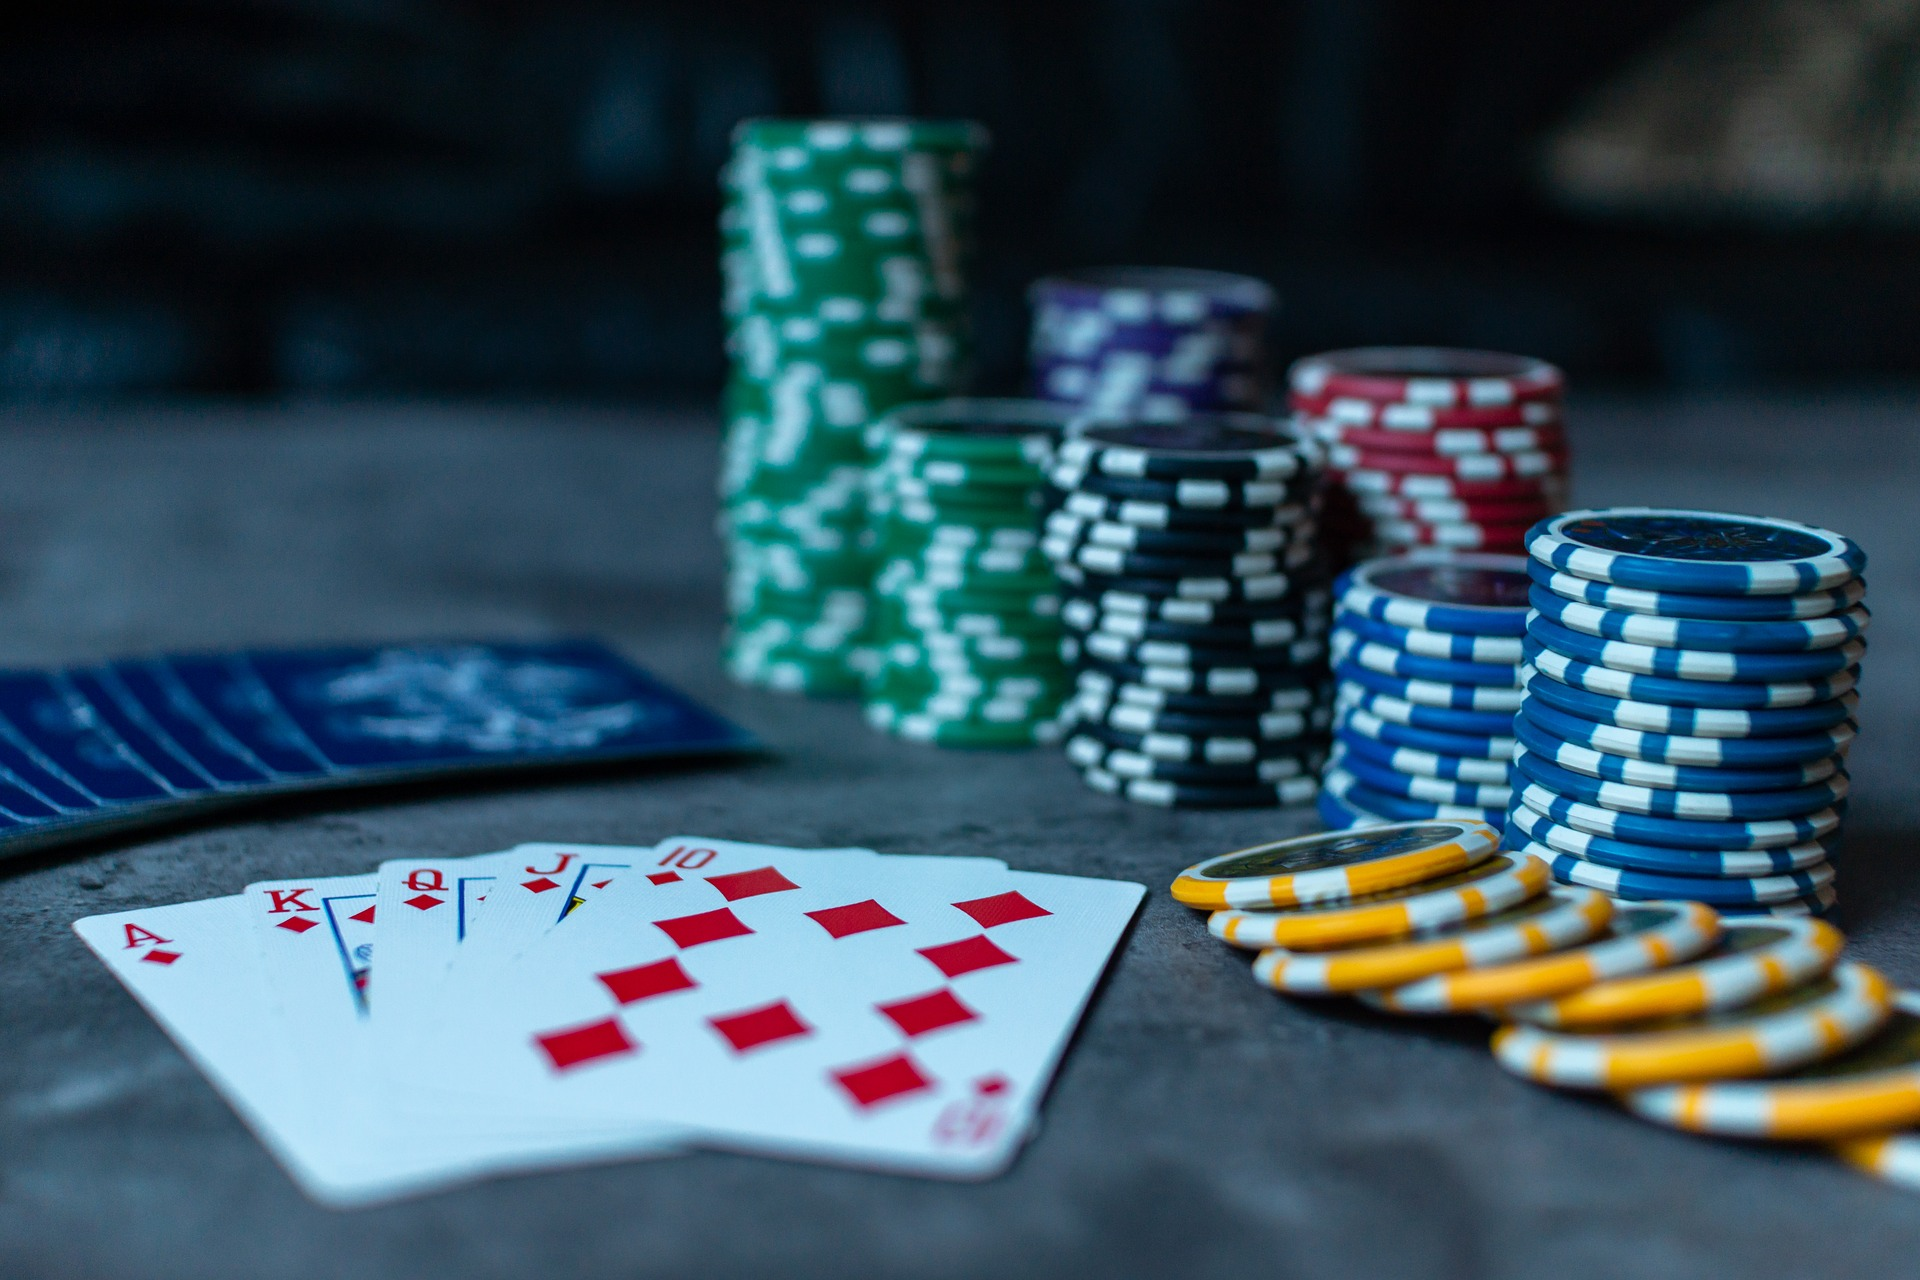 Playing poker can improve your negotiation skills, here's how. 2